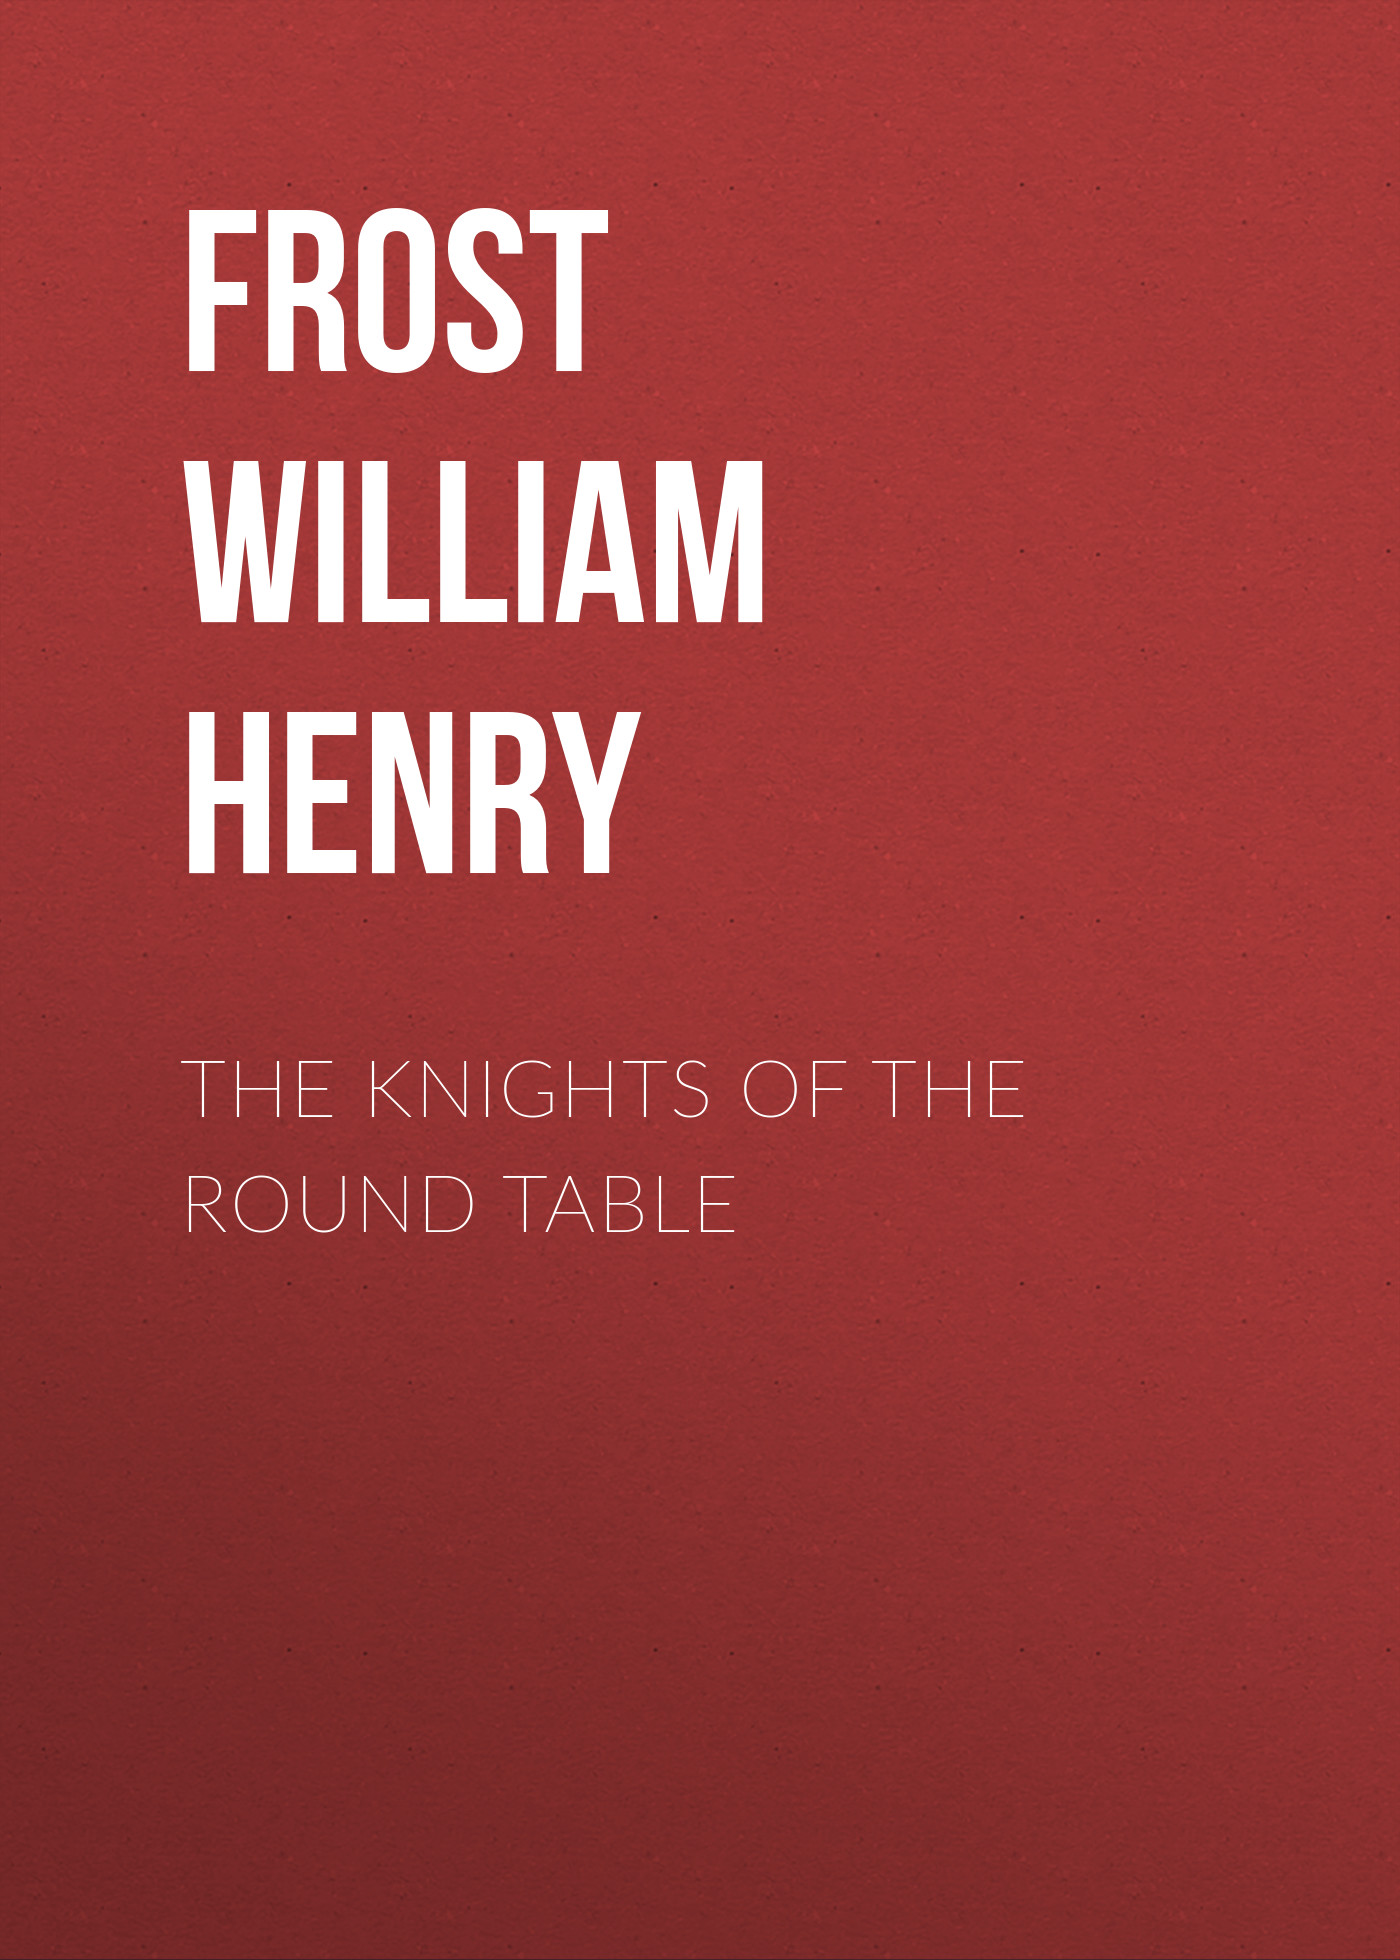 Frost William Henry The Knights of the Round Table henry james the europeans